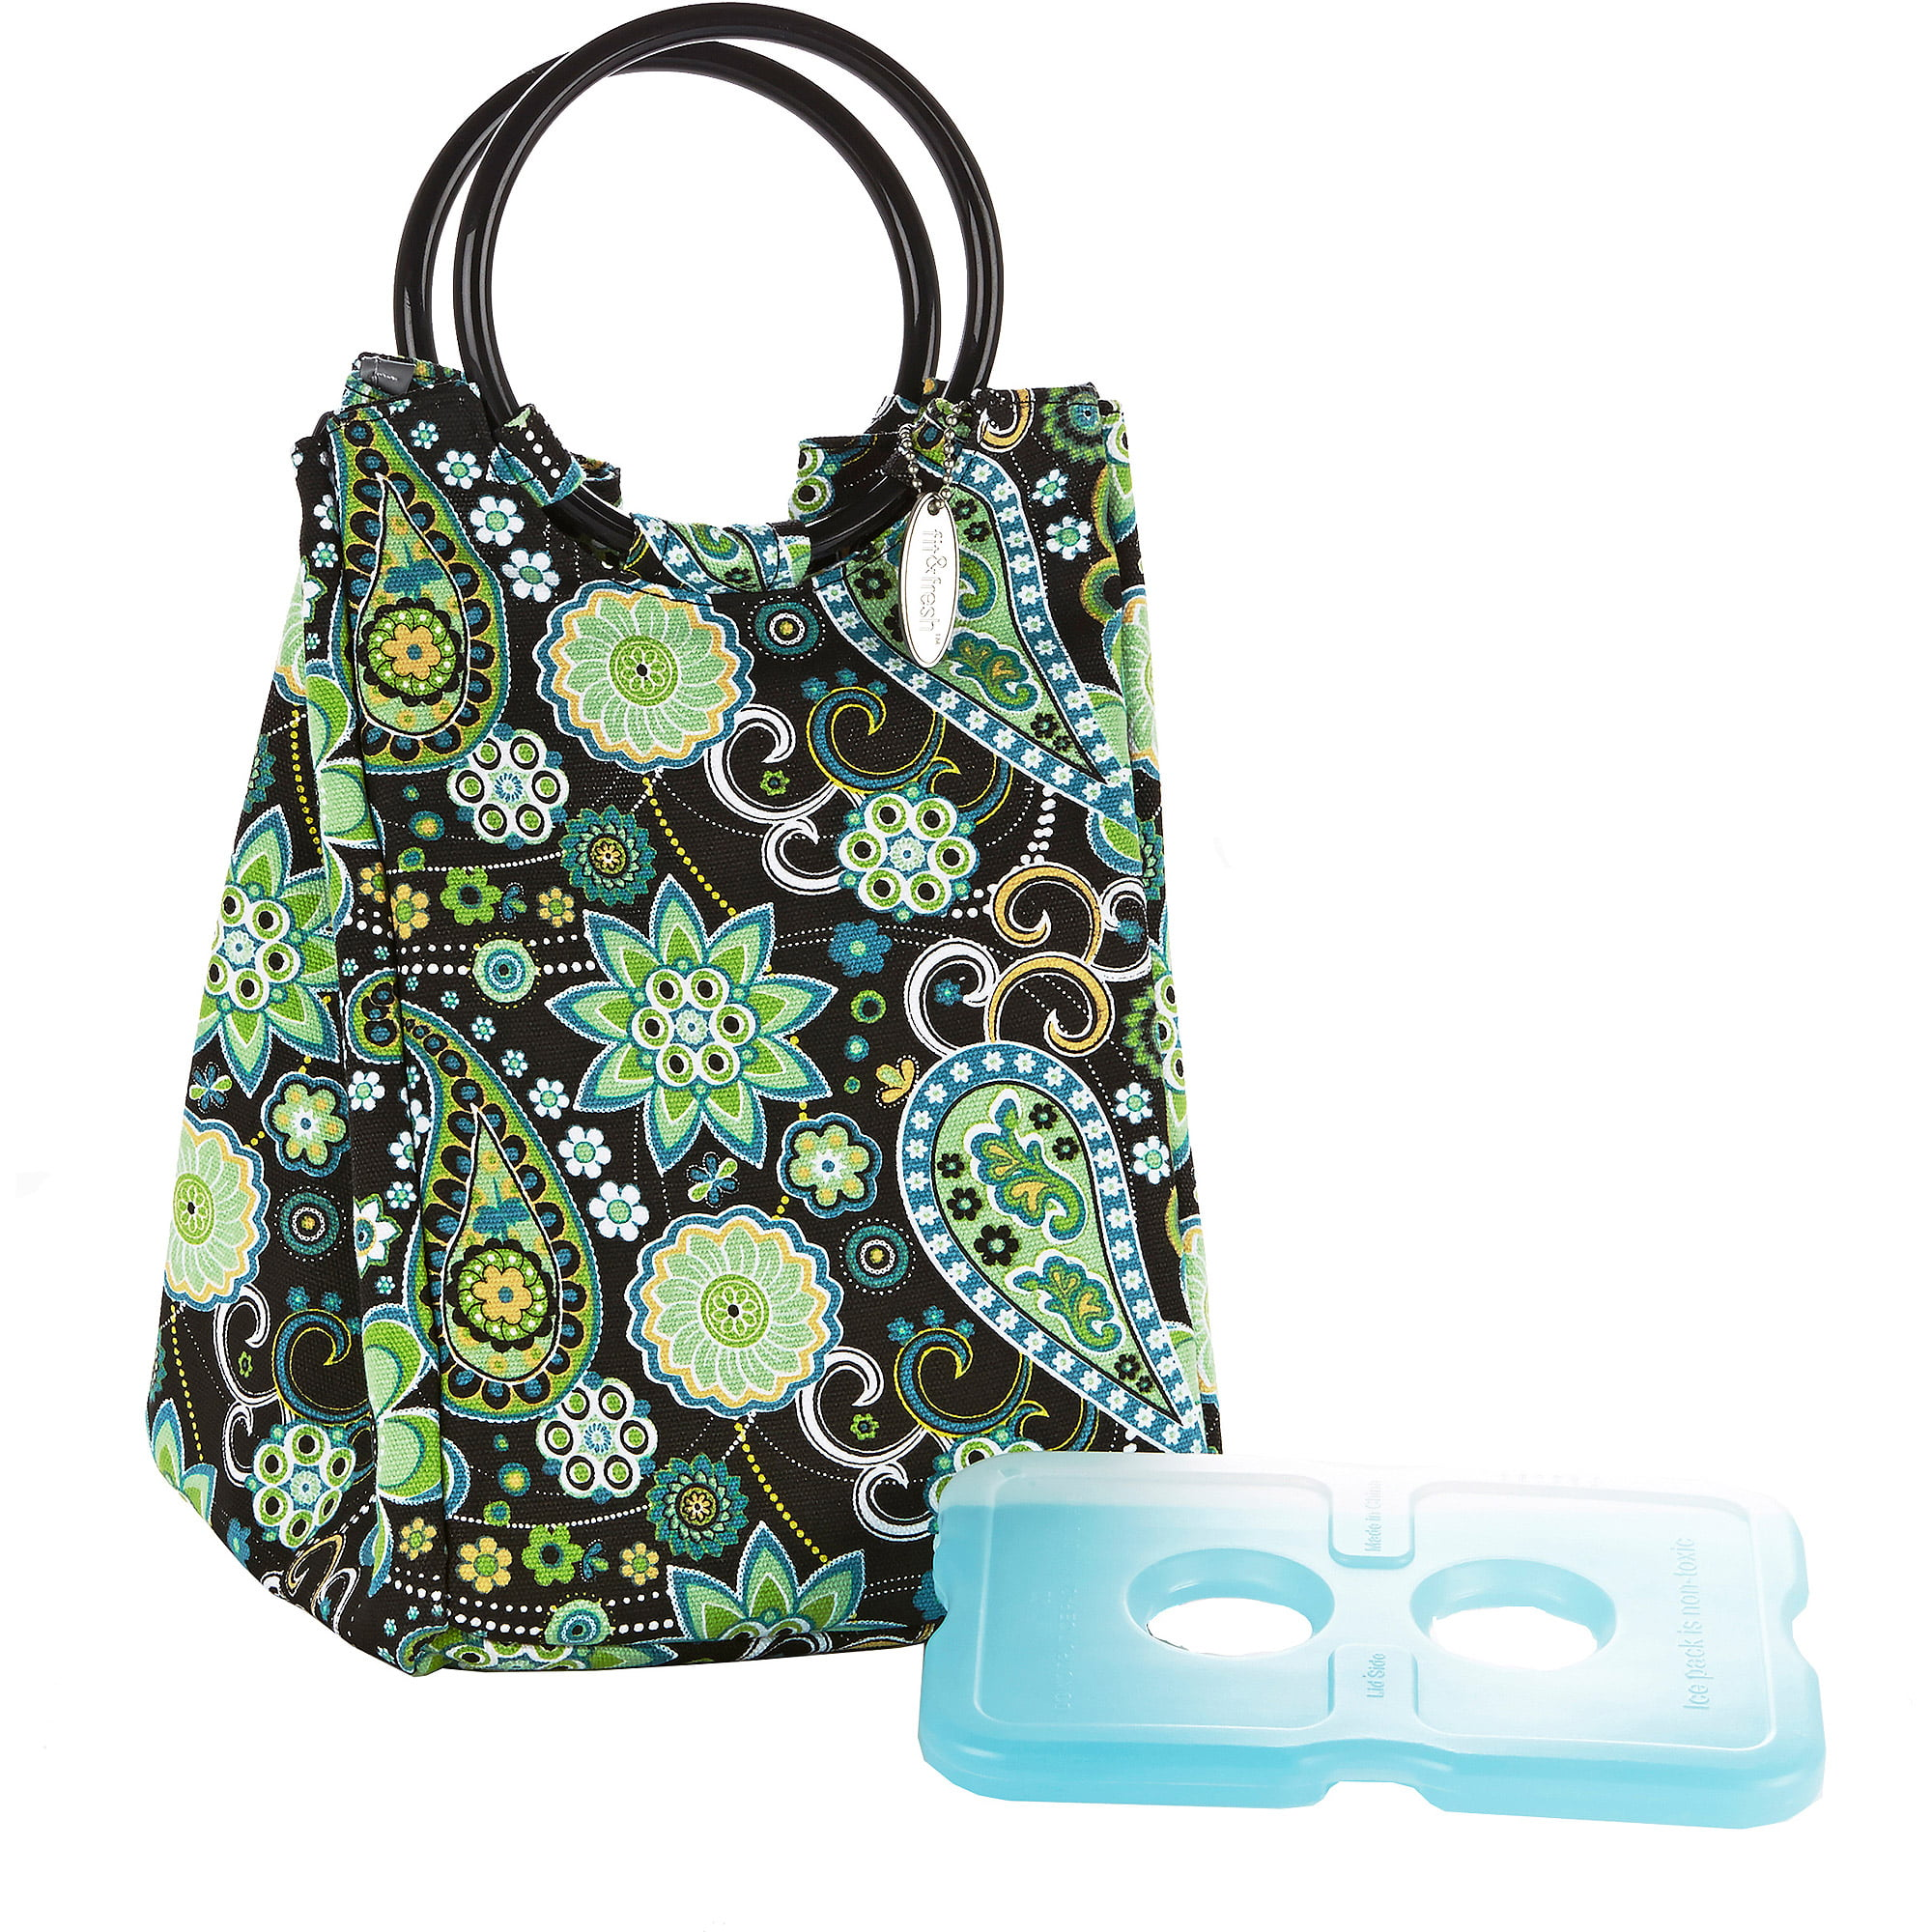 fit and fresh retro designer lunch bag in green paisley with ice walmartcom